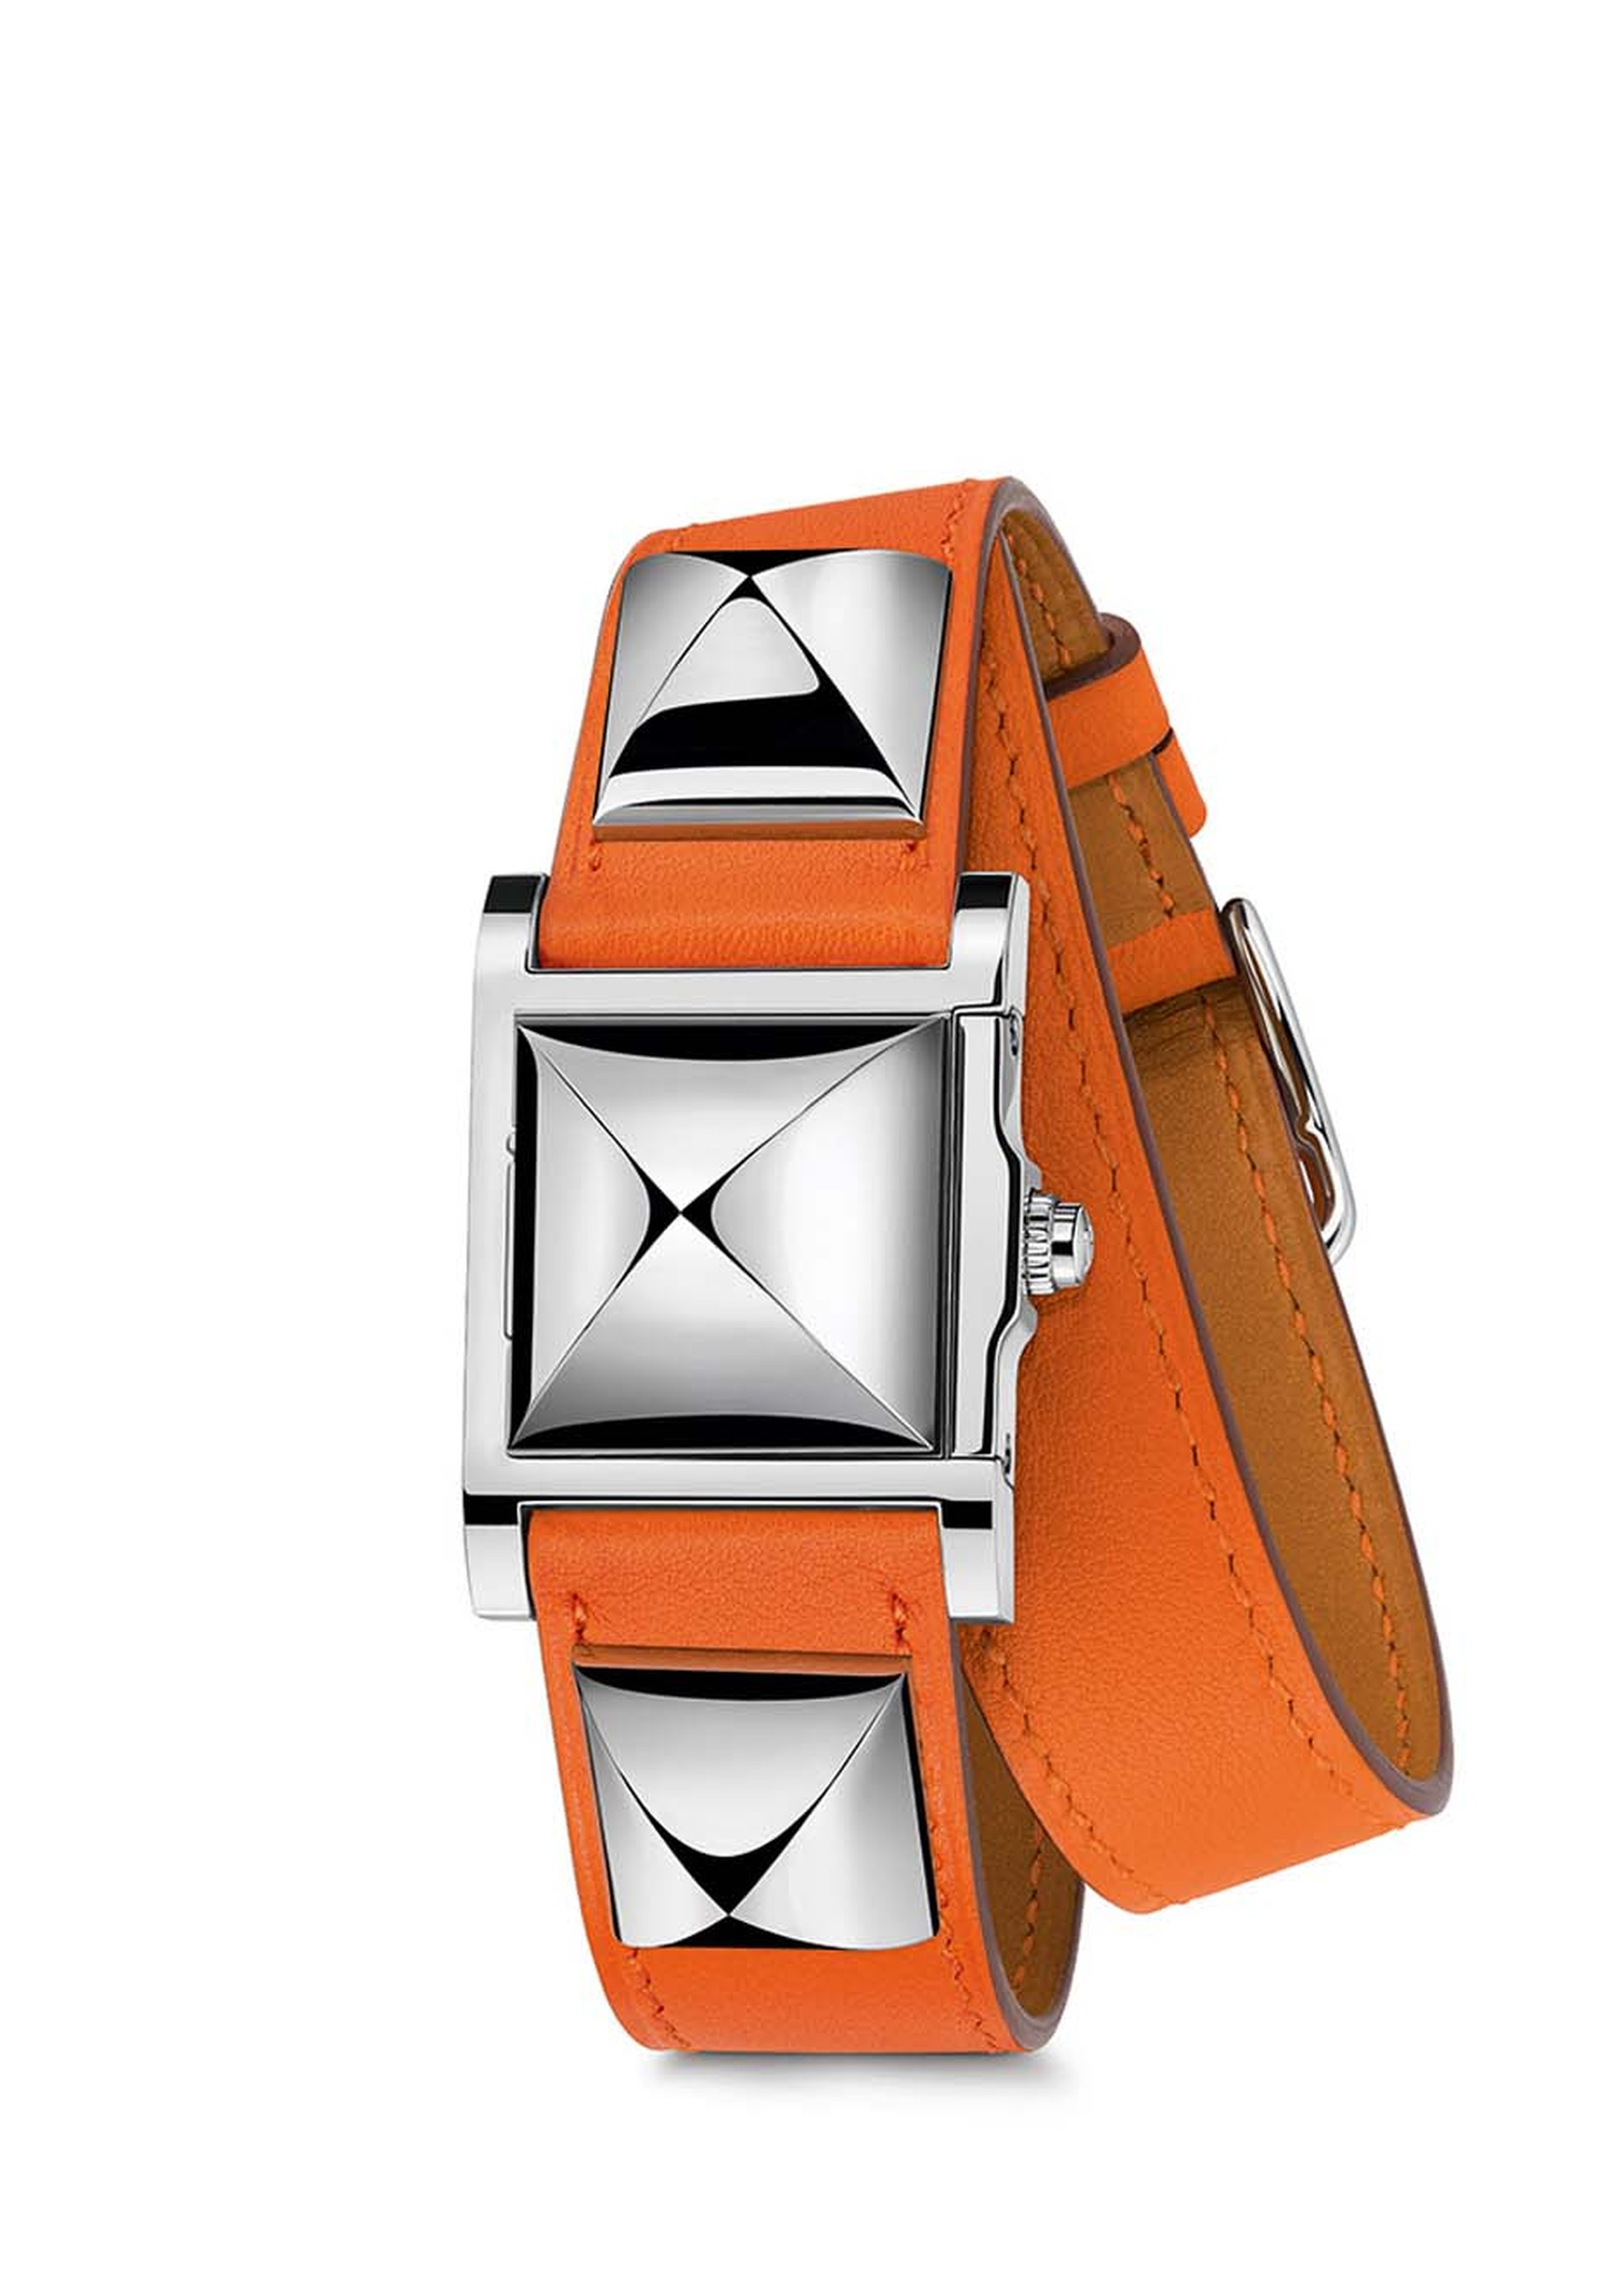 The Hermès Médor secret watch was inspired by a studded leather dog collar.